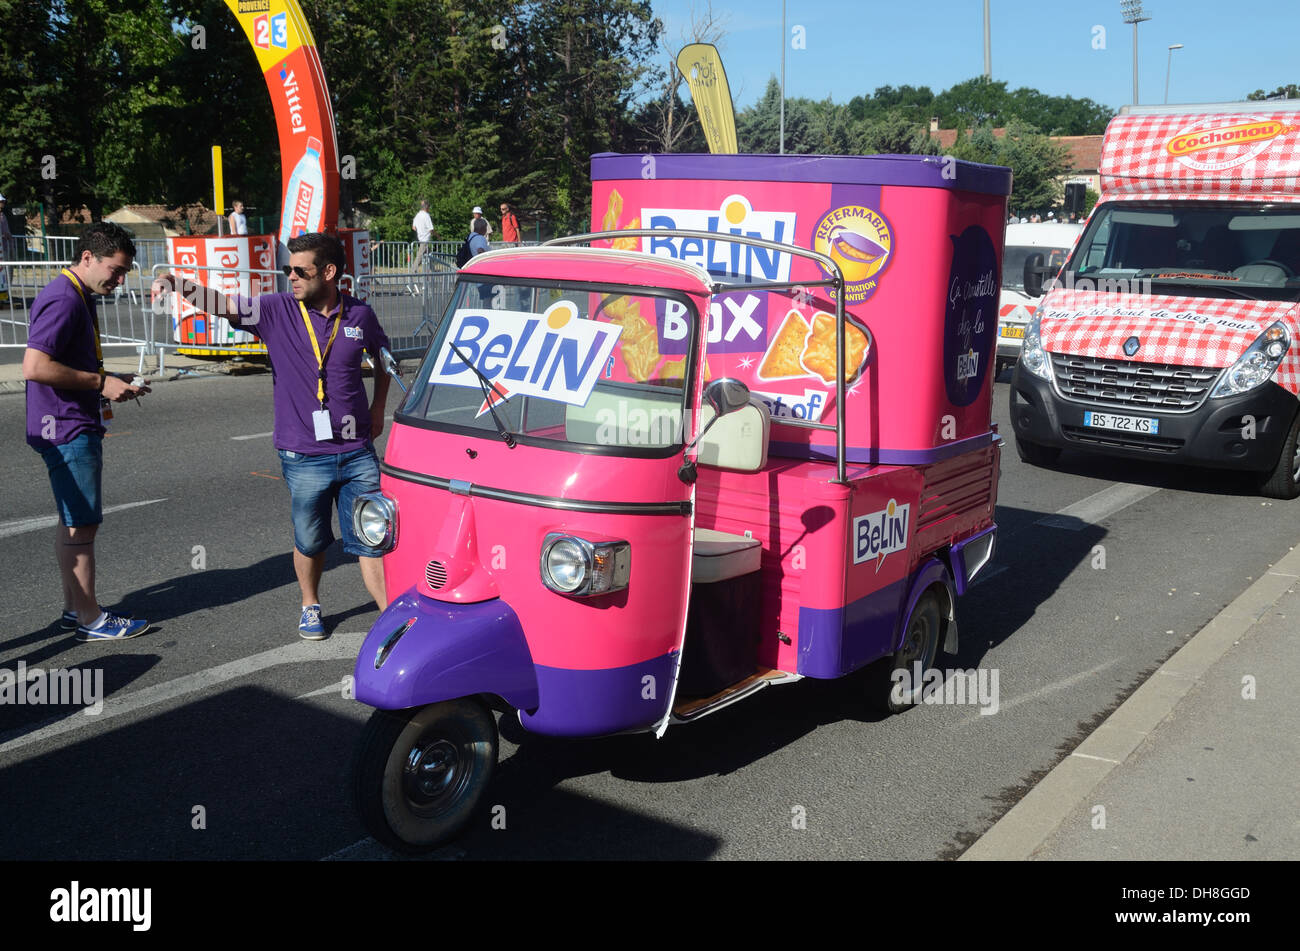 Rubbish cars we love auto rickshaw  you dont see many in london naked (45 photos), Bikini Celebrites images